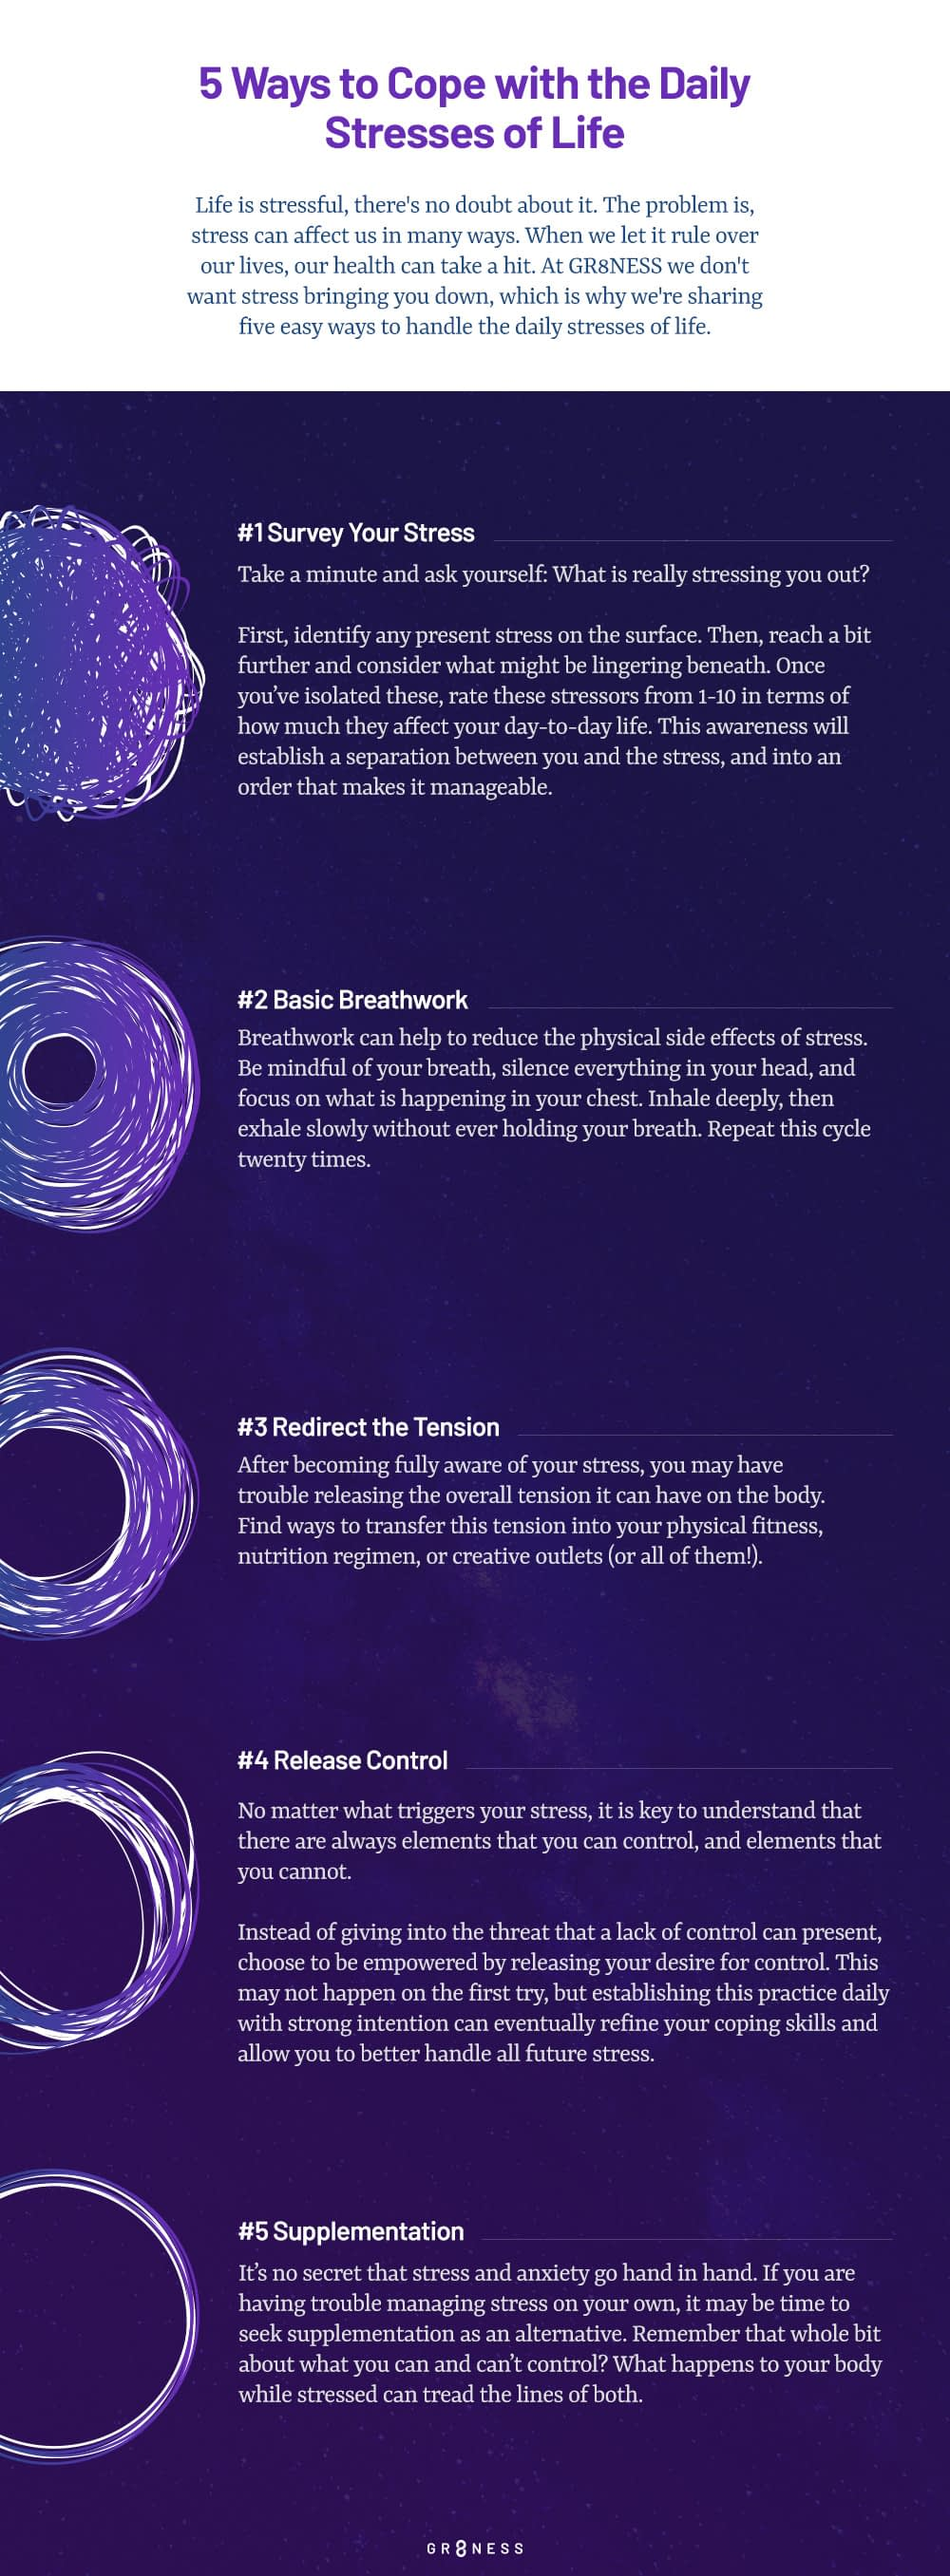 An infographic listing 5 ways to cope with daily stress